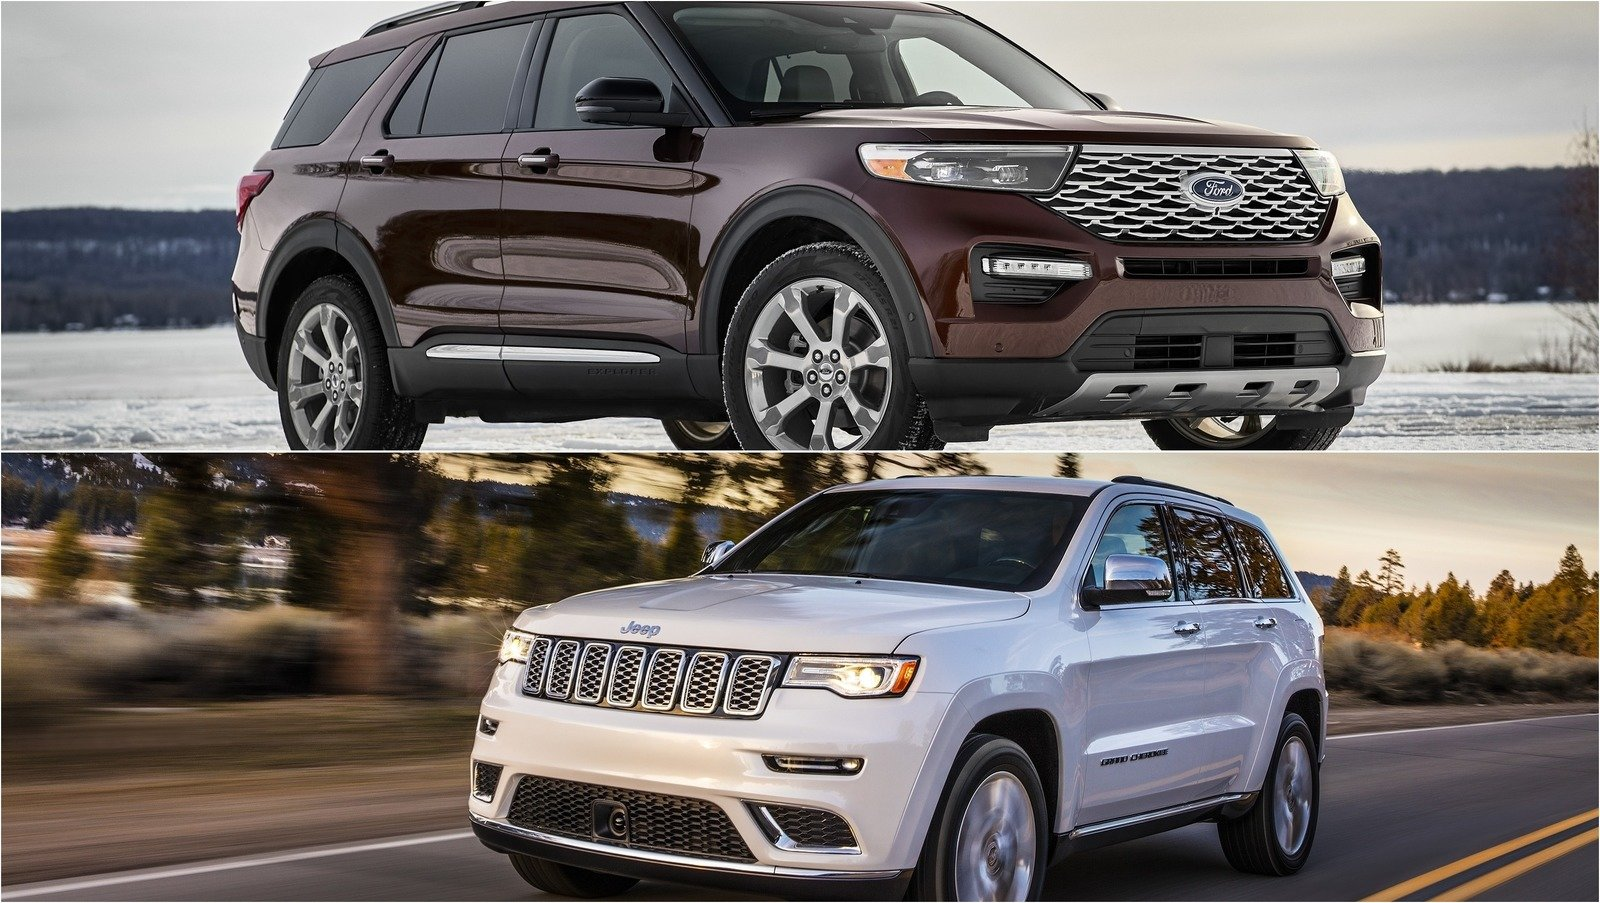 2020 Ford Explorer Vs 2019 Jeep Grand Cherokee | Top Speed